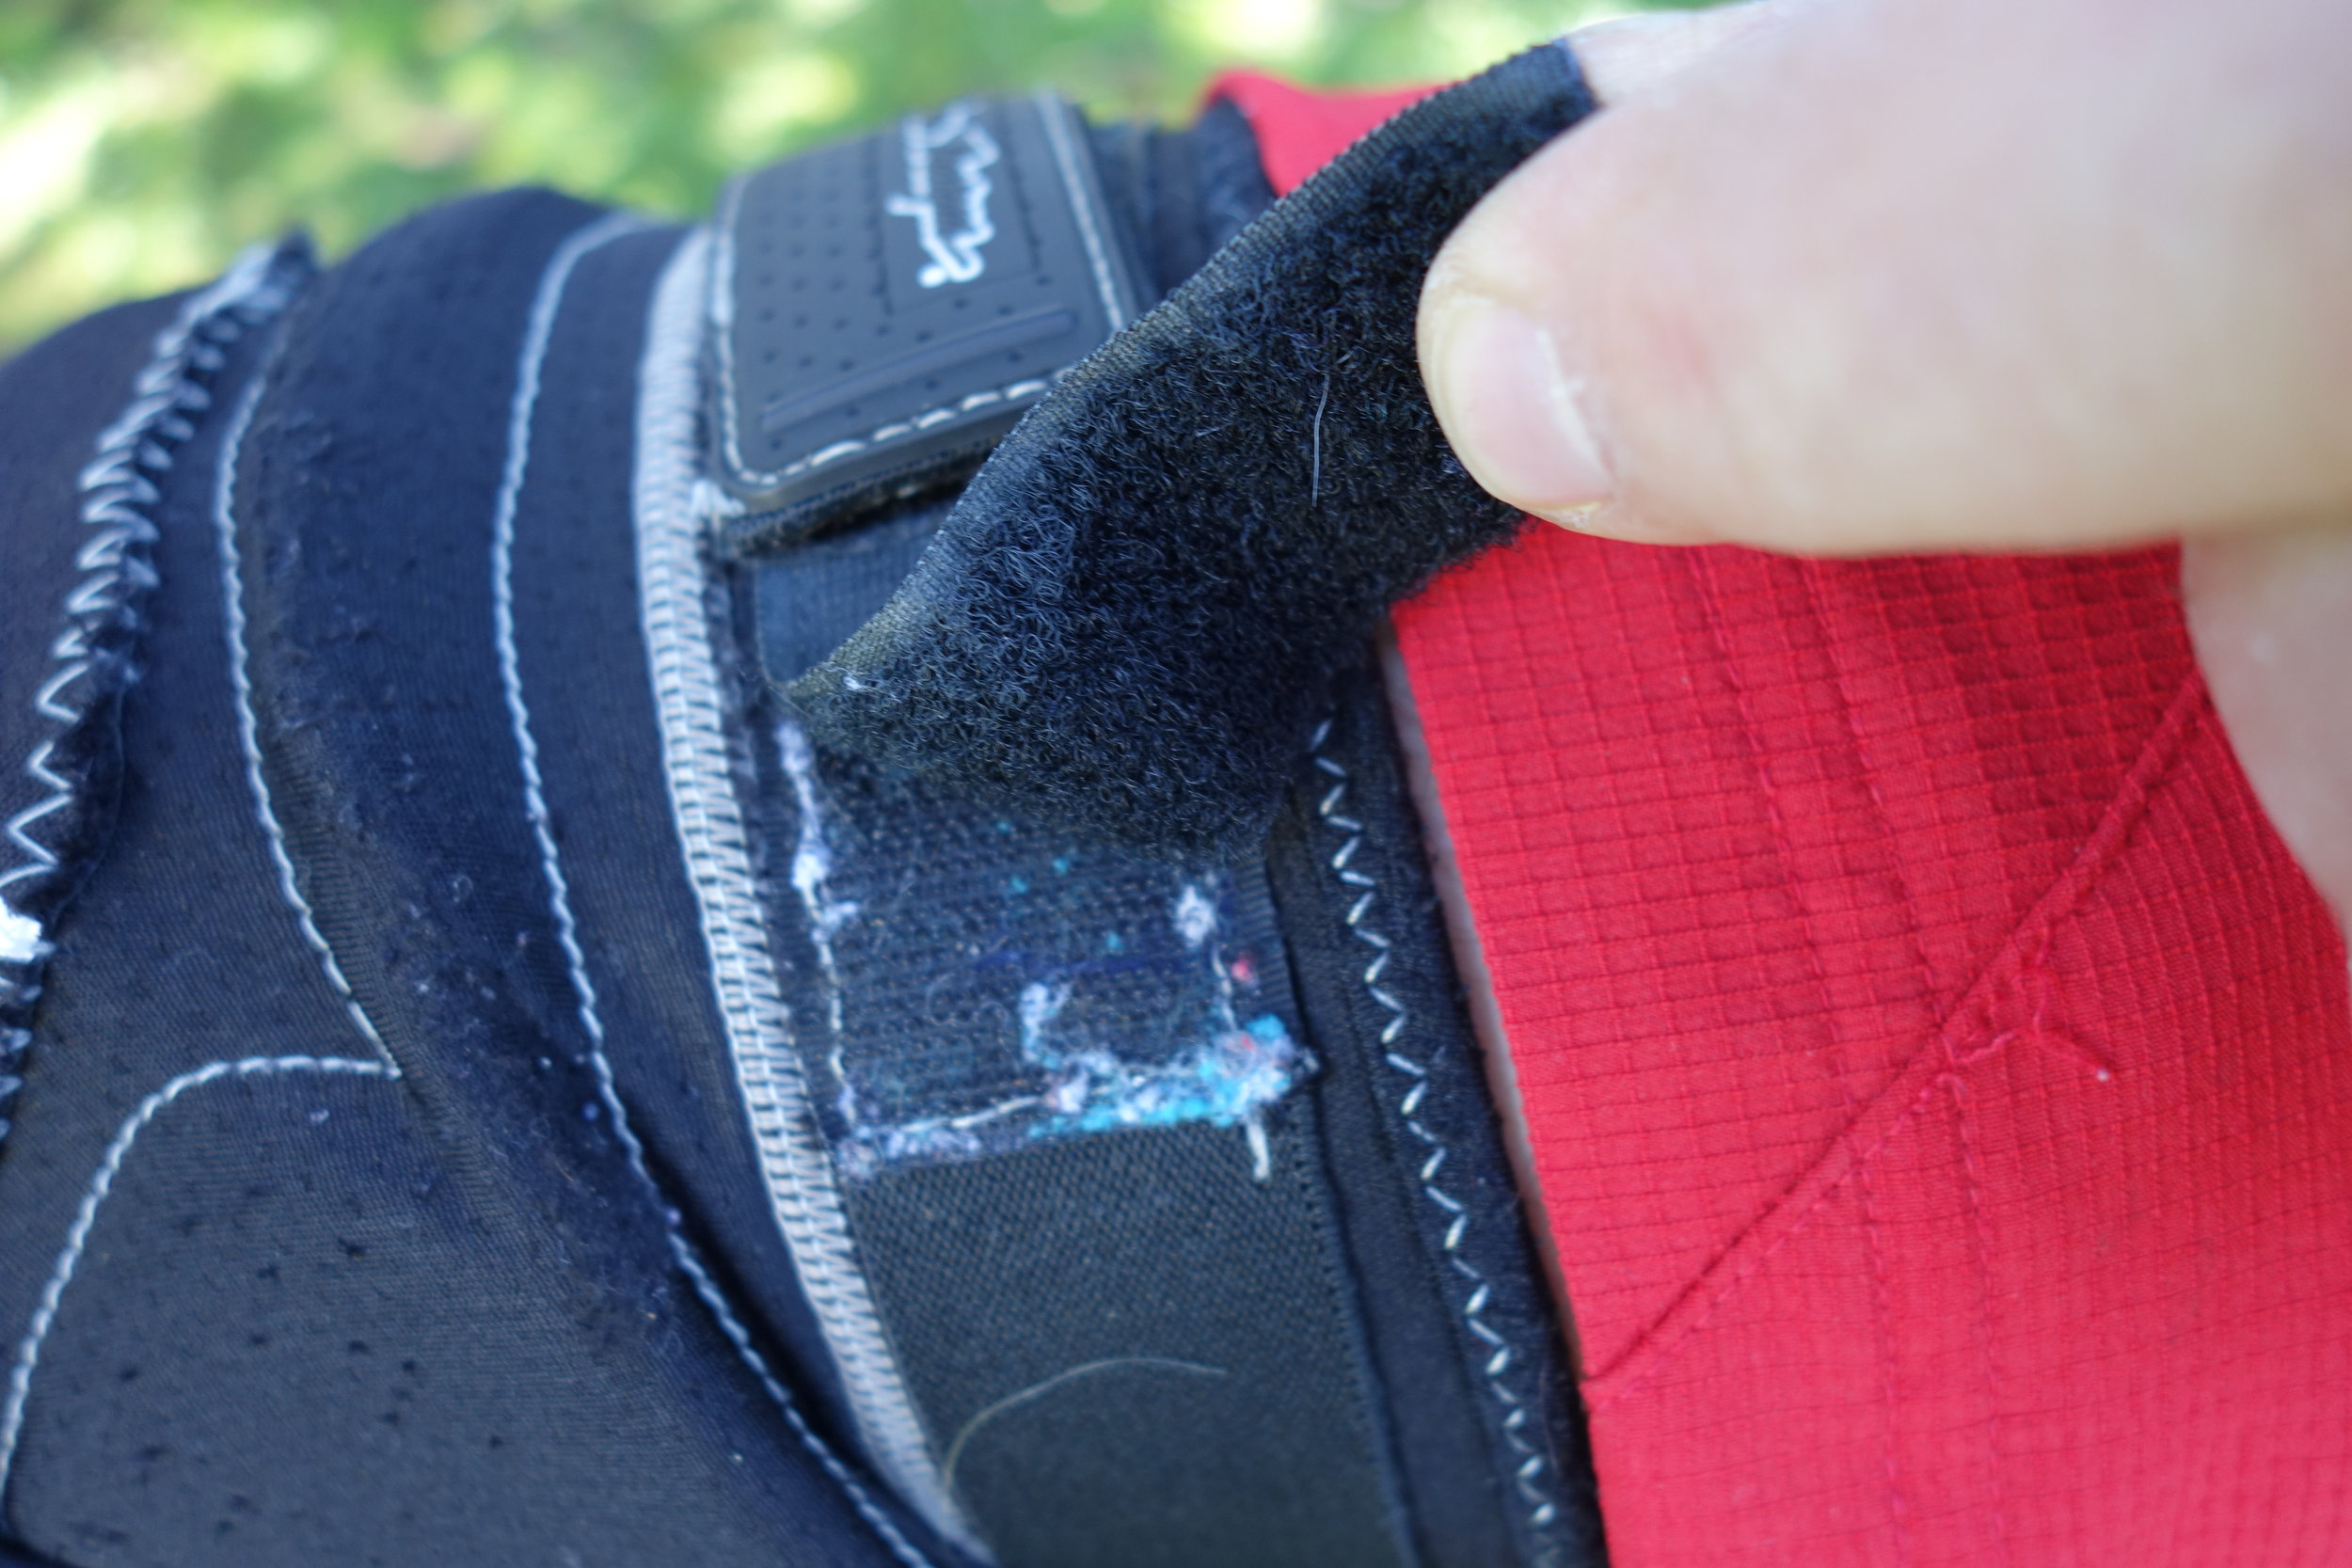 Stupid arse about face bloody velcro hooks. They kept catching on my shorts and making me look even more of a twat than normal. I just stuck this bit of extra loop bit on. How do designers/quality control get things so wrong?